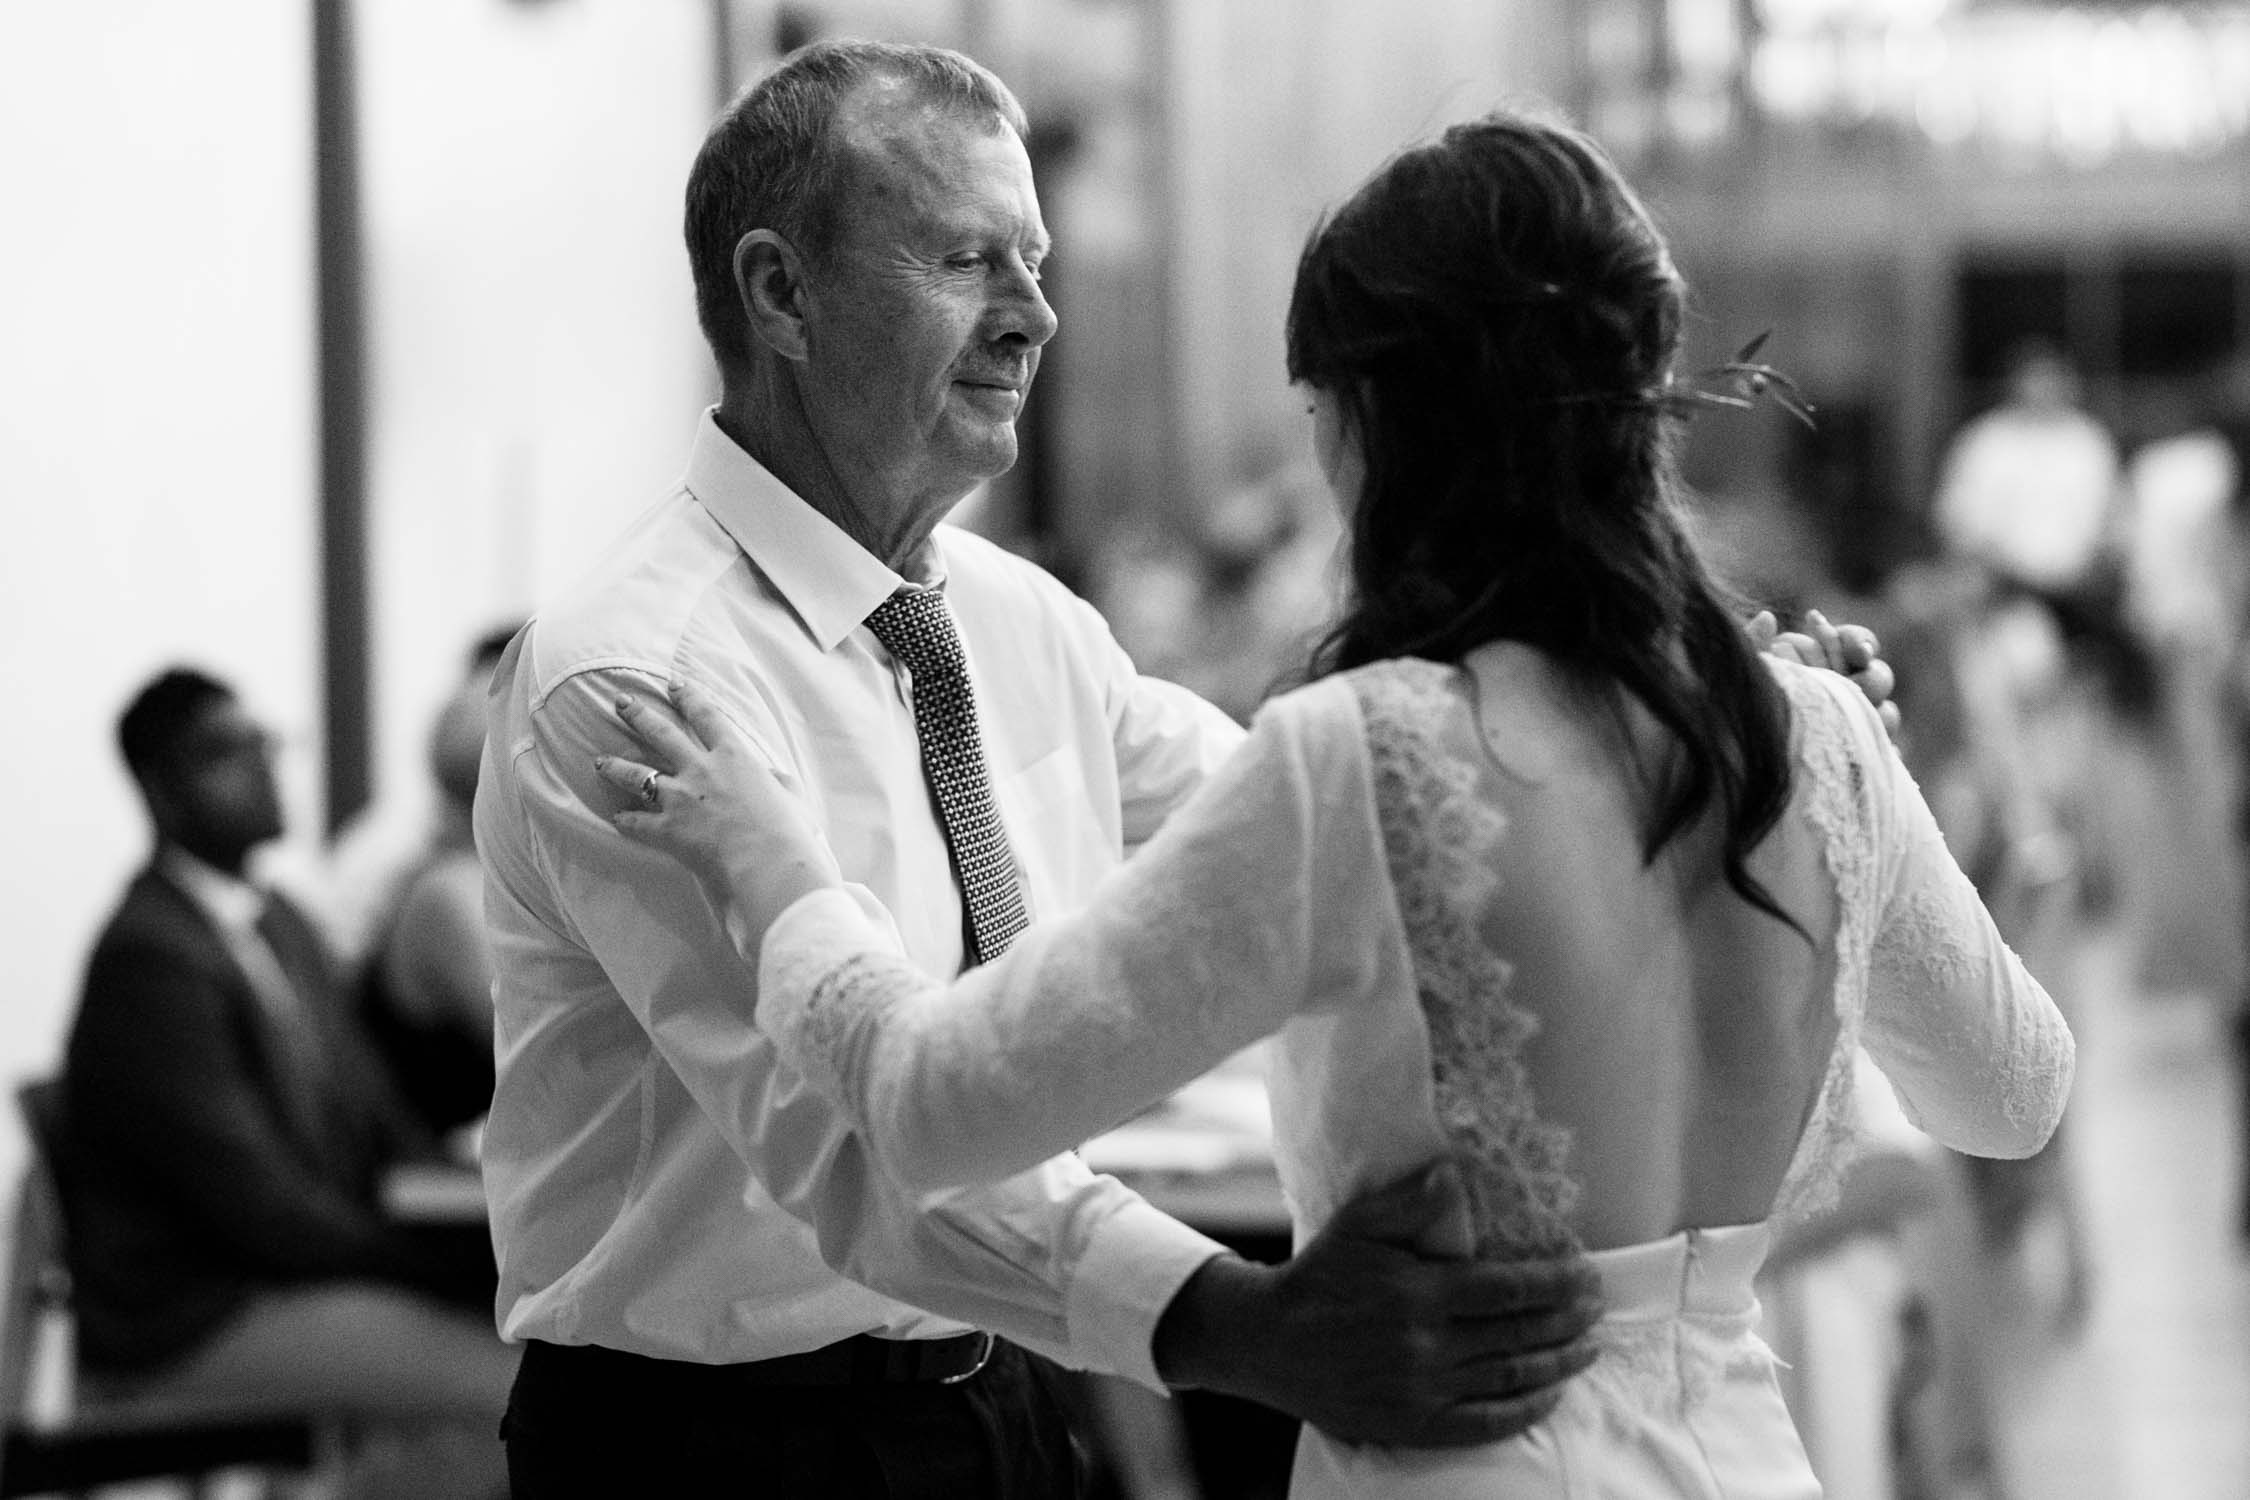 Father and daughter dance at The Permanent Wedding Venue in Vancouver, Canada